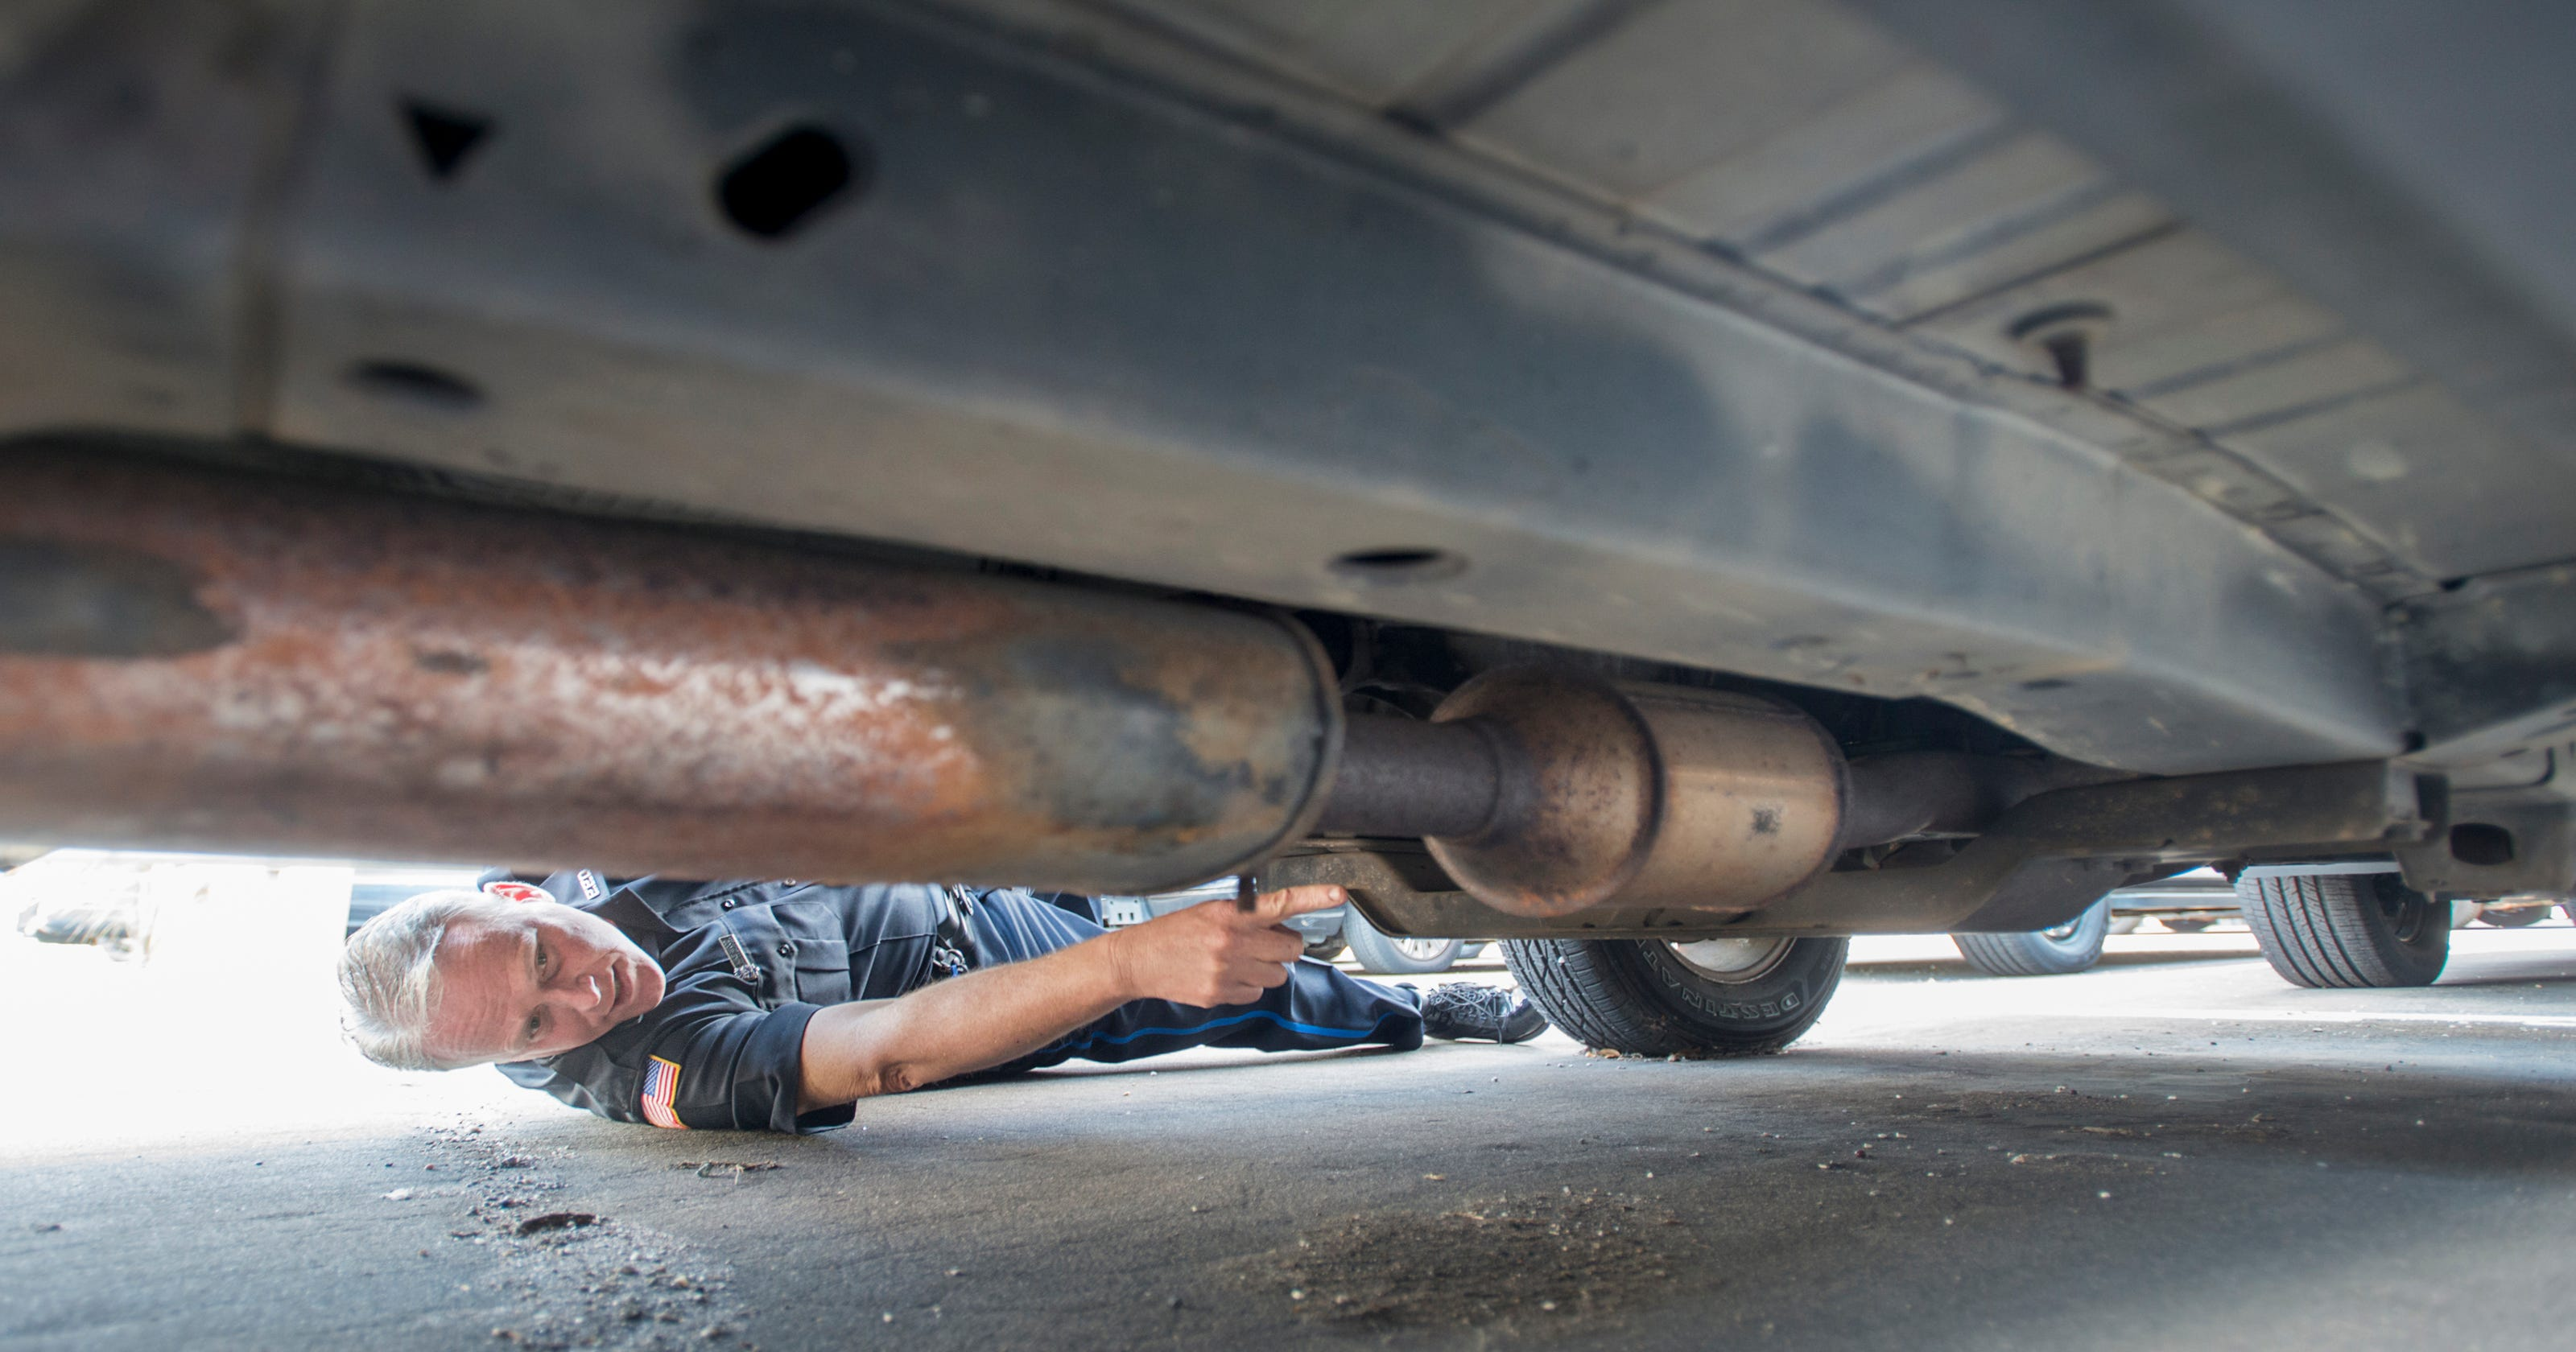 Pensacola police say thieves are cutting catalytic